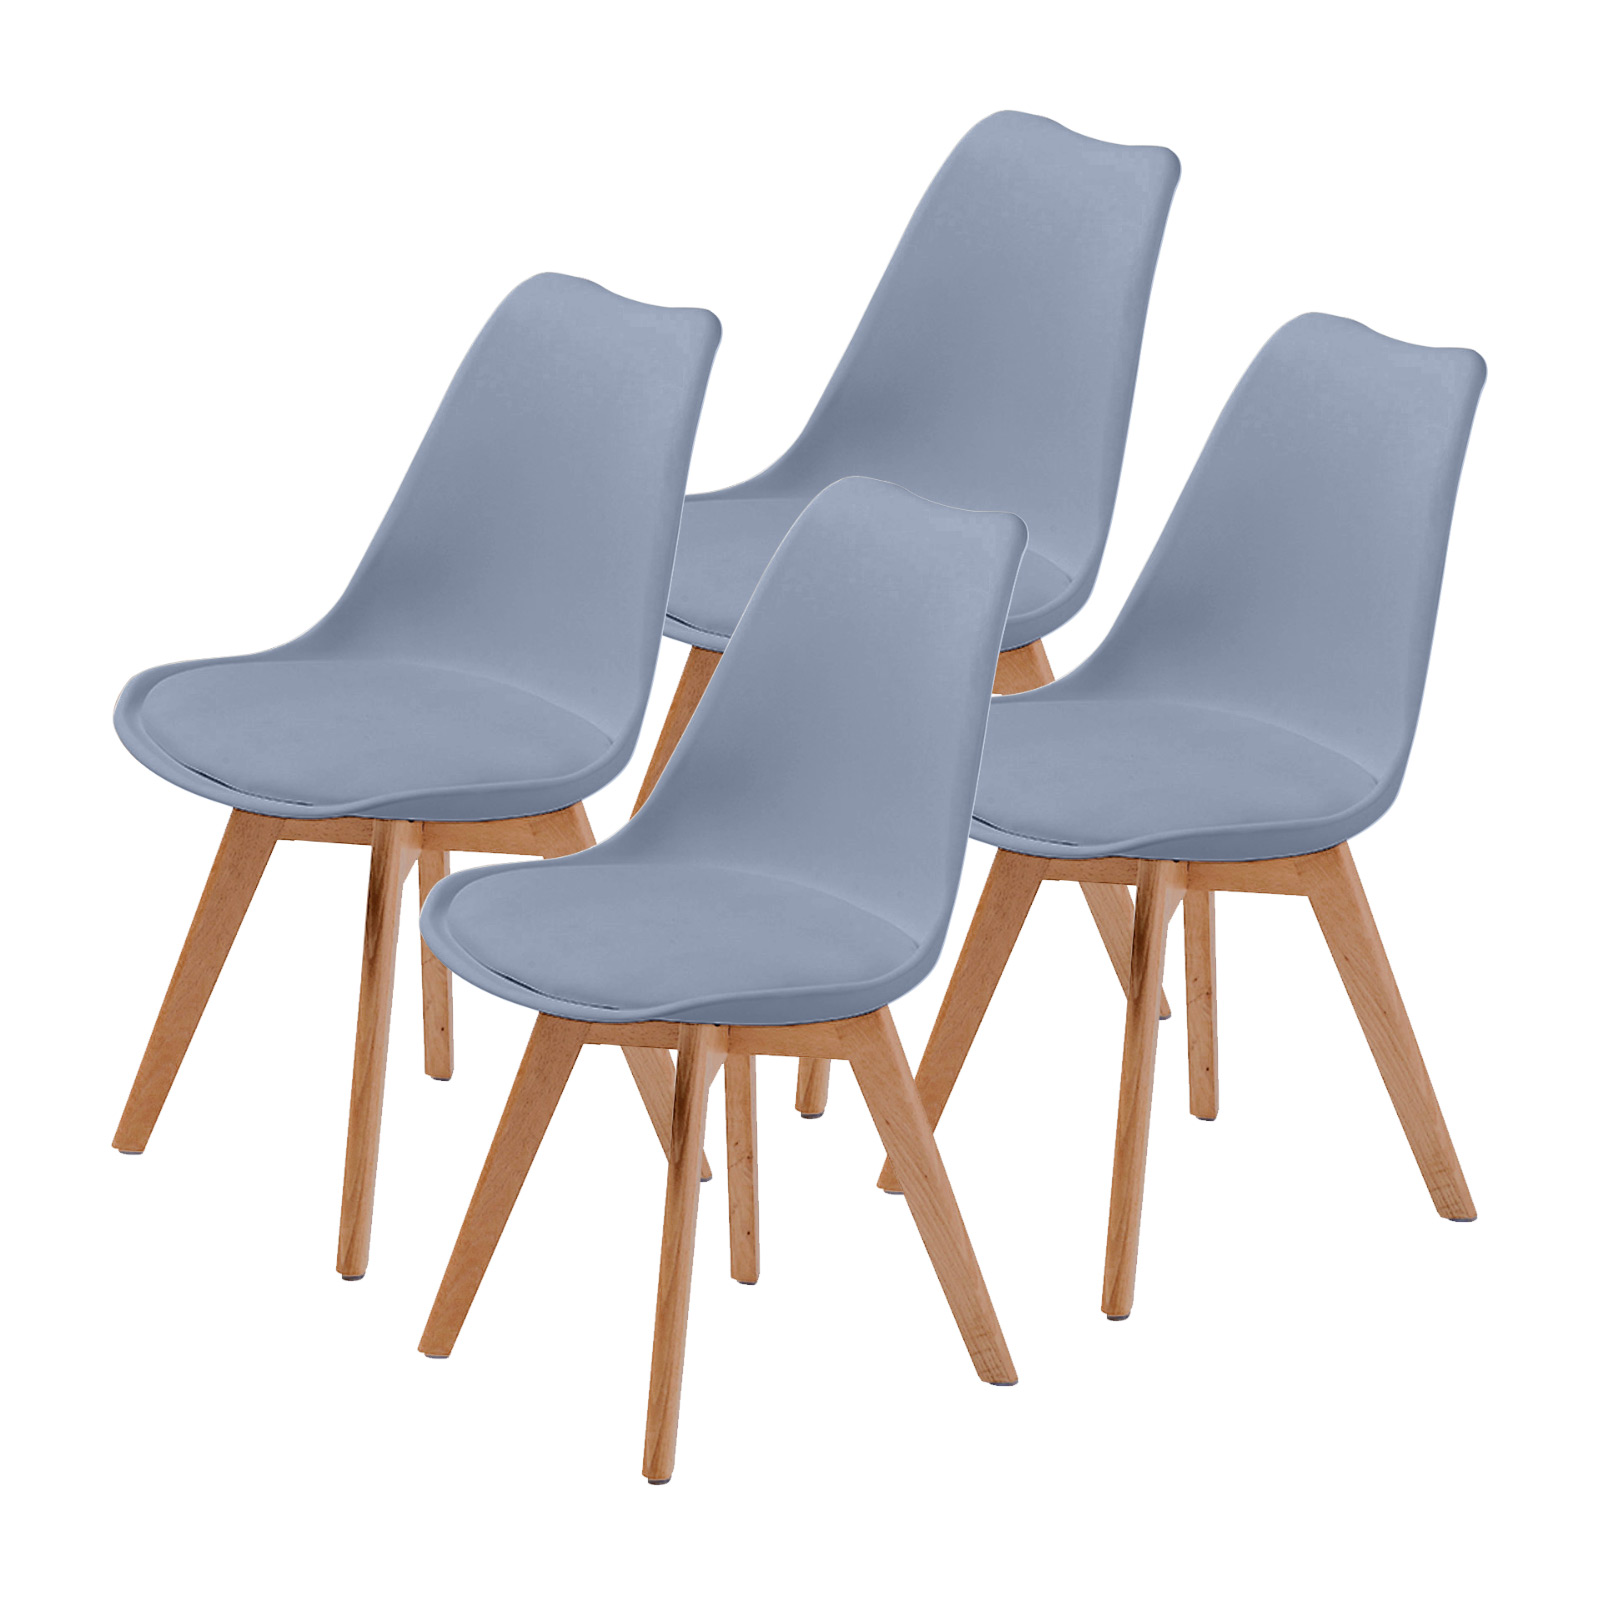 4X Padded Seat Dining Chair - GREY